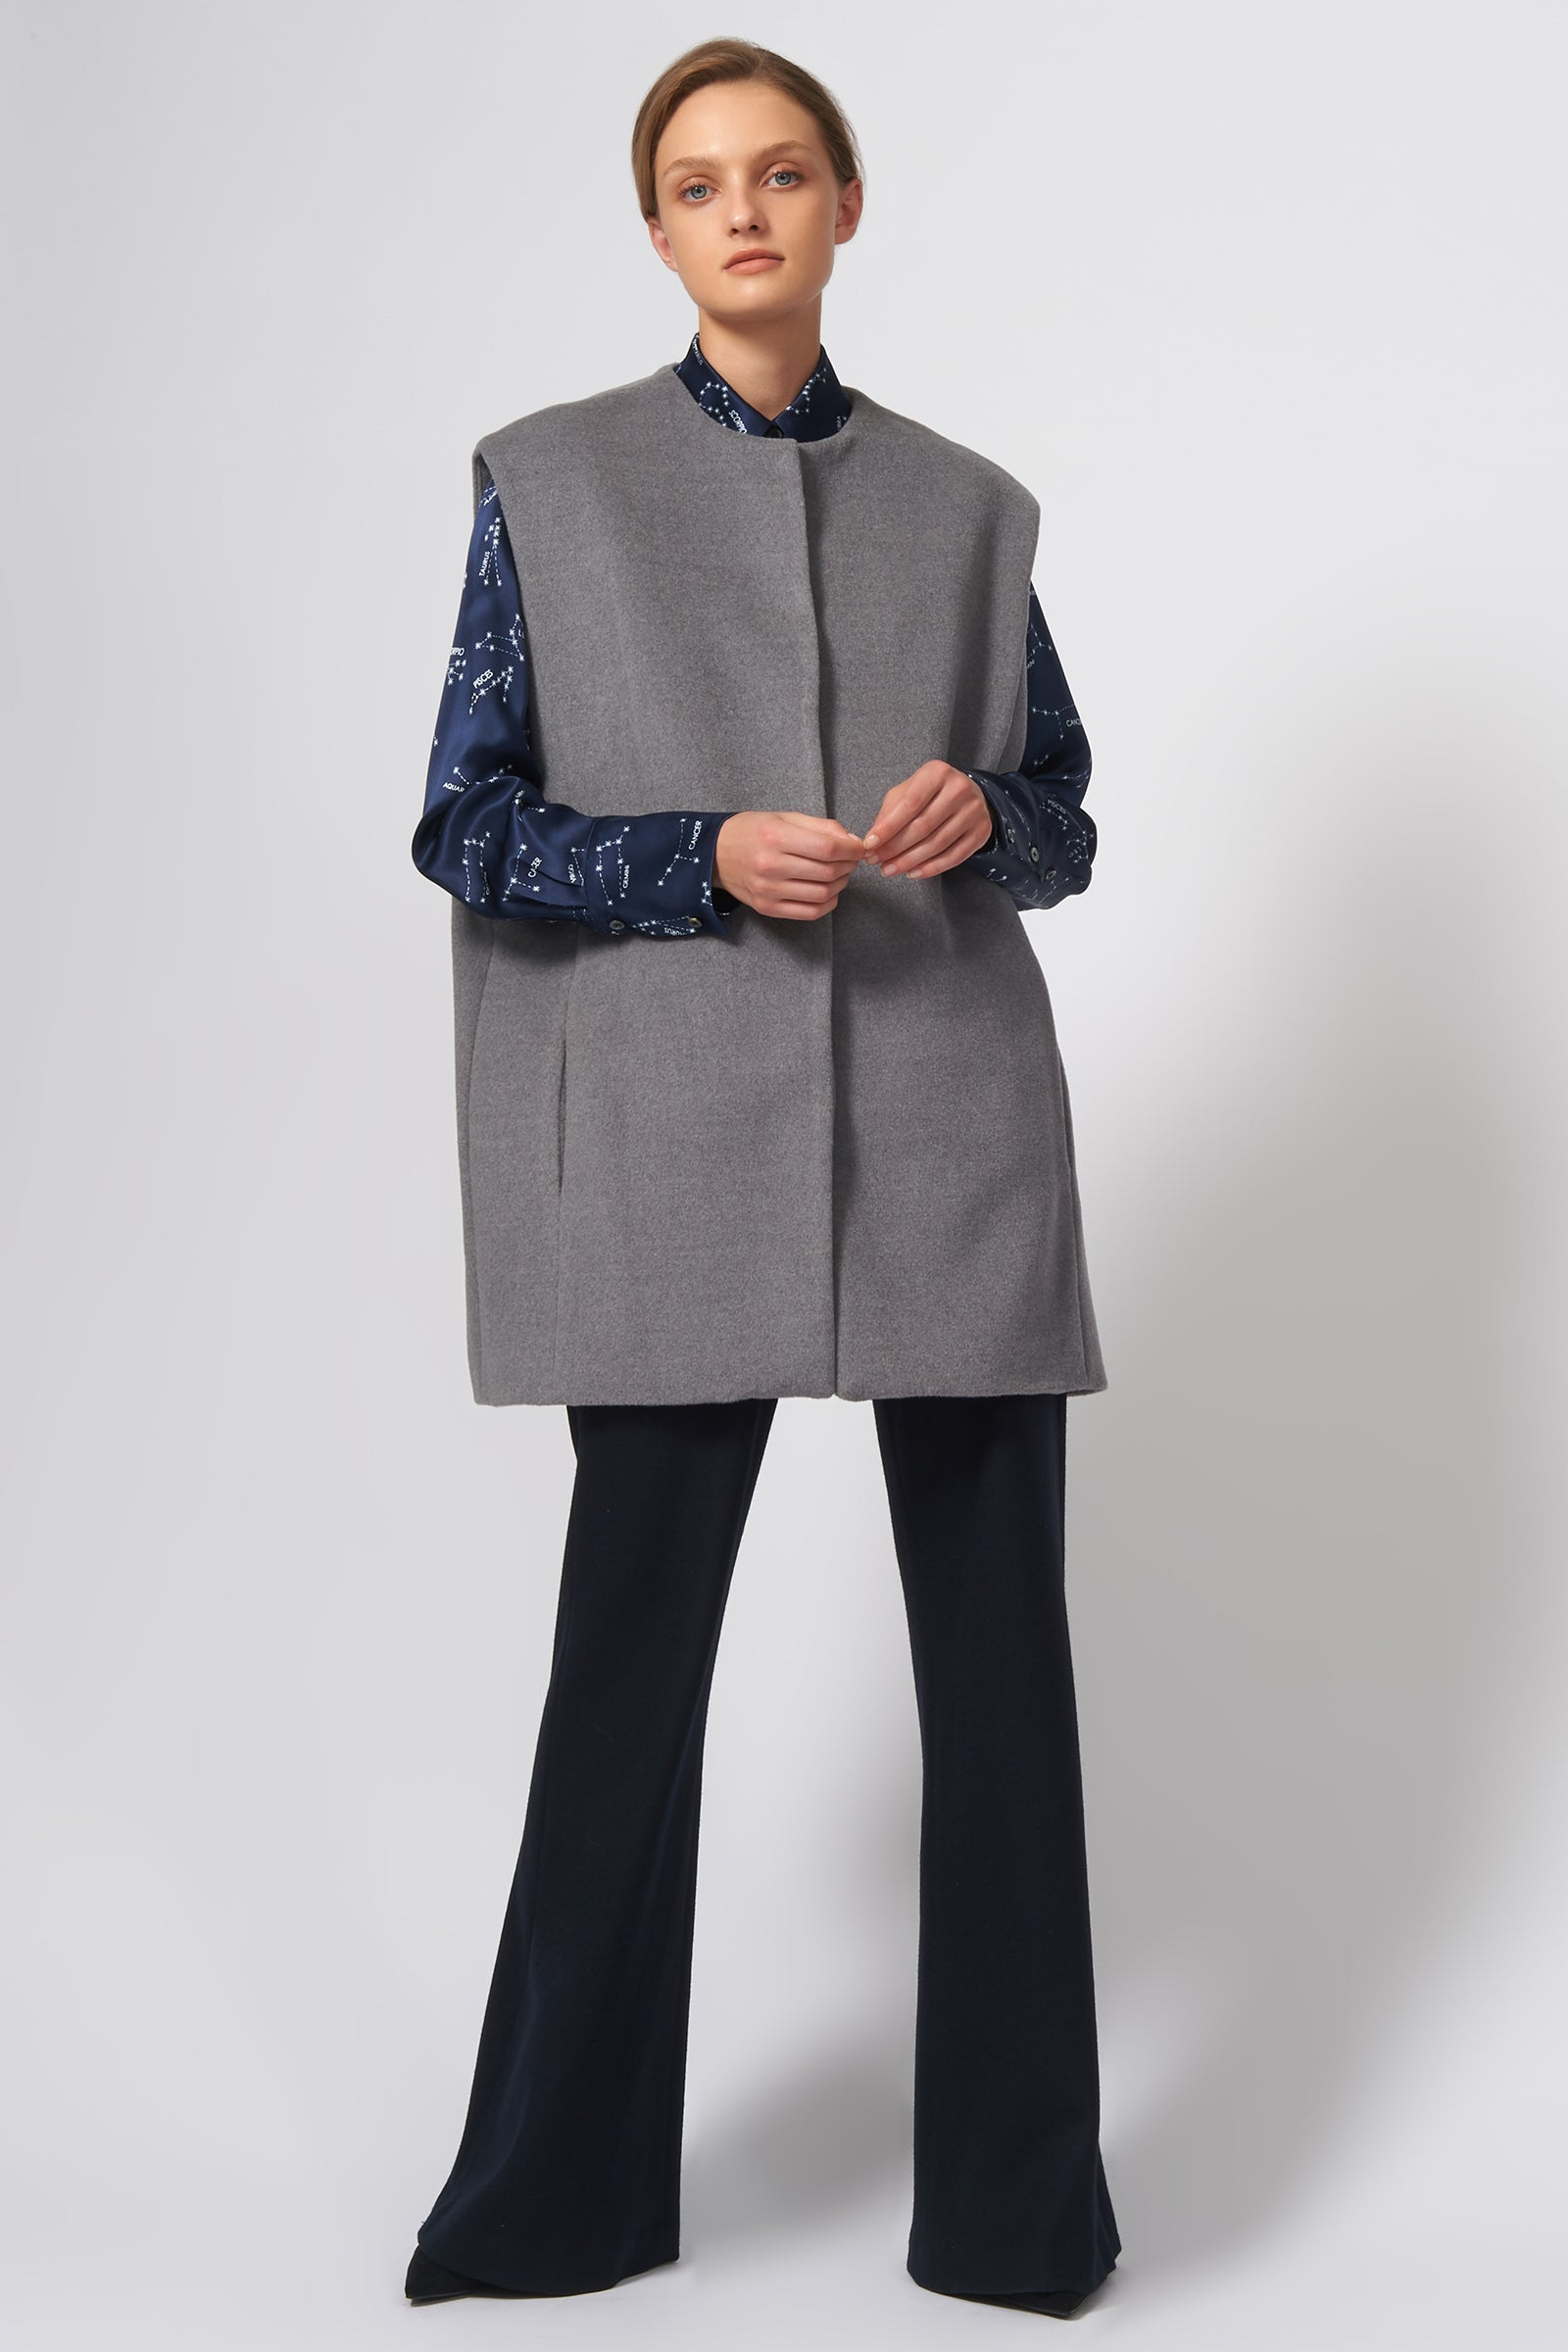 Kal Rieman Swing Vest in Grey Brushed Wool Coating on Model Front Full View